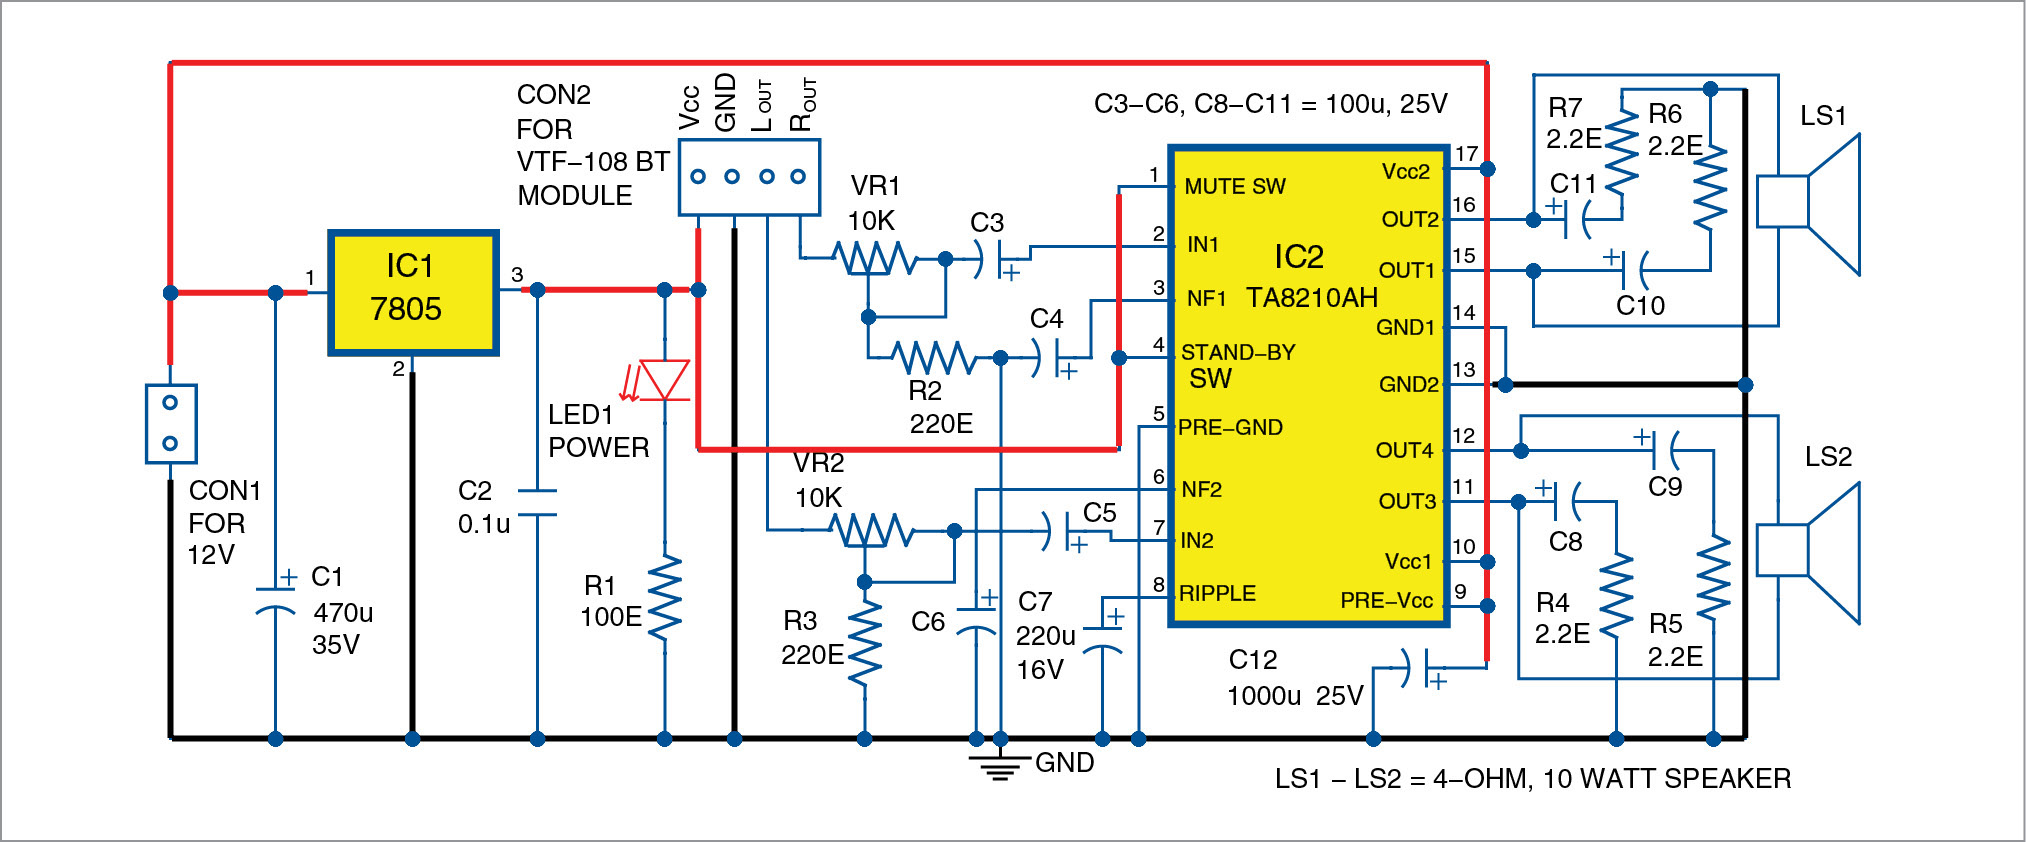 Schematic Parts List Pcb Download Download This Circuit In Pdf Search